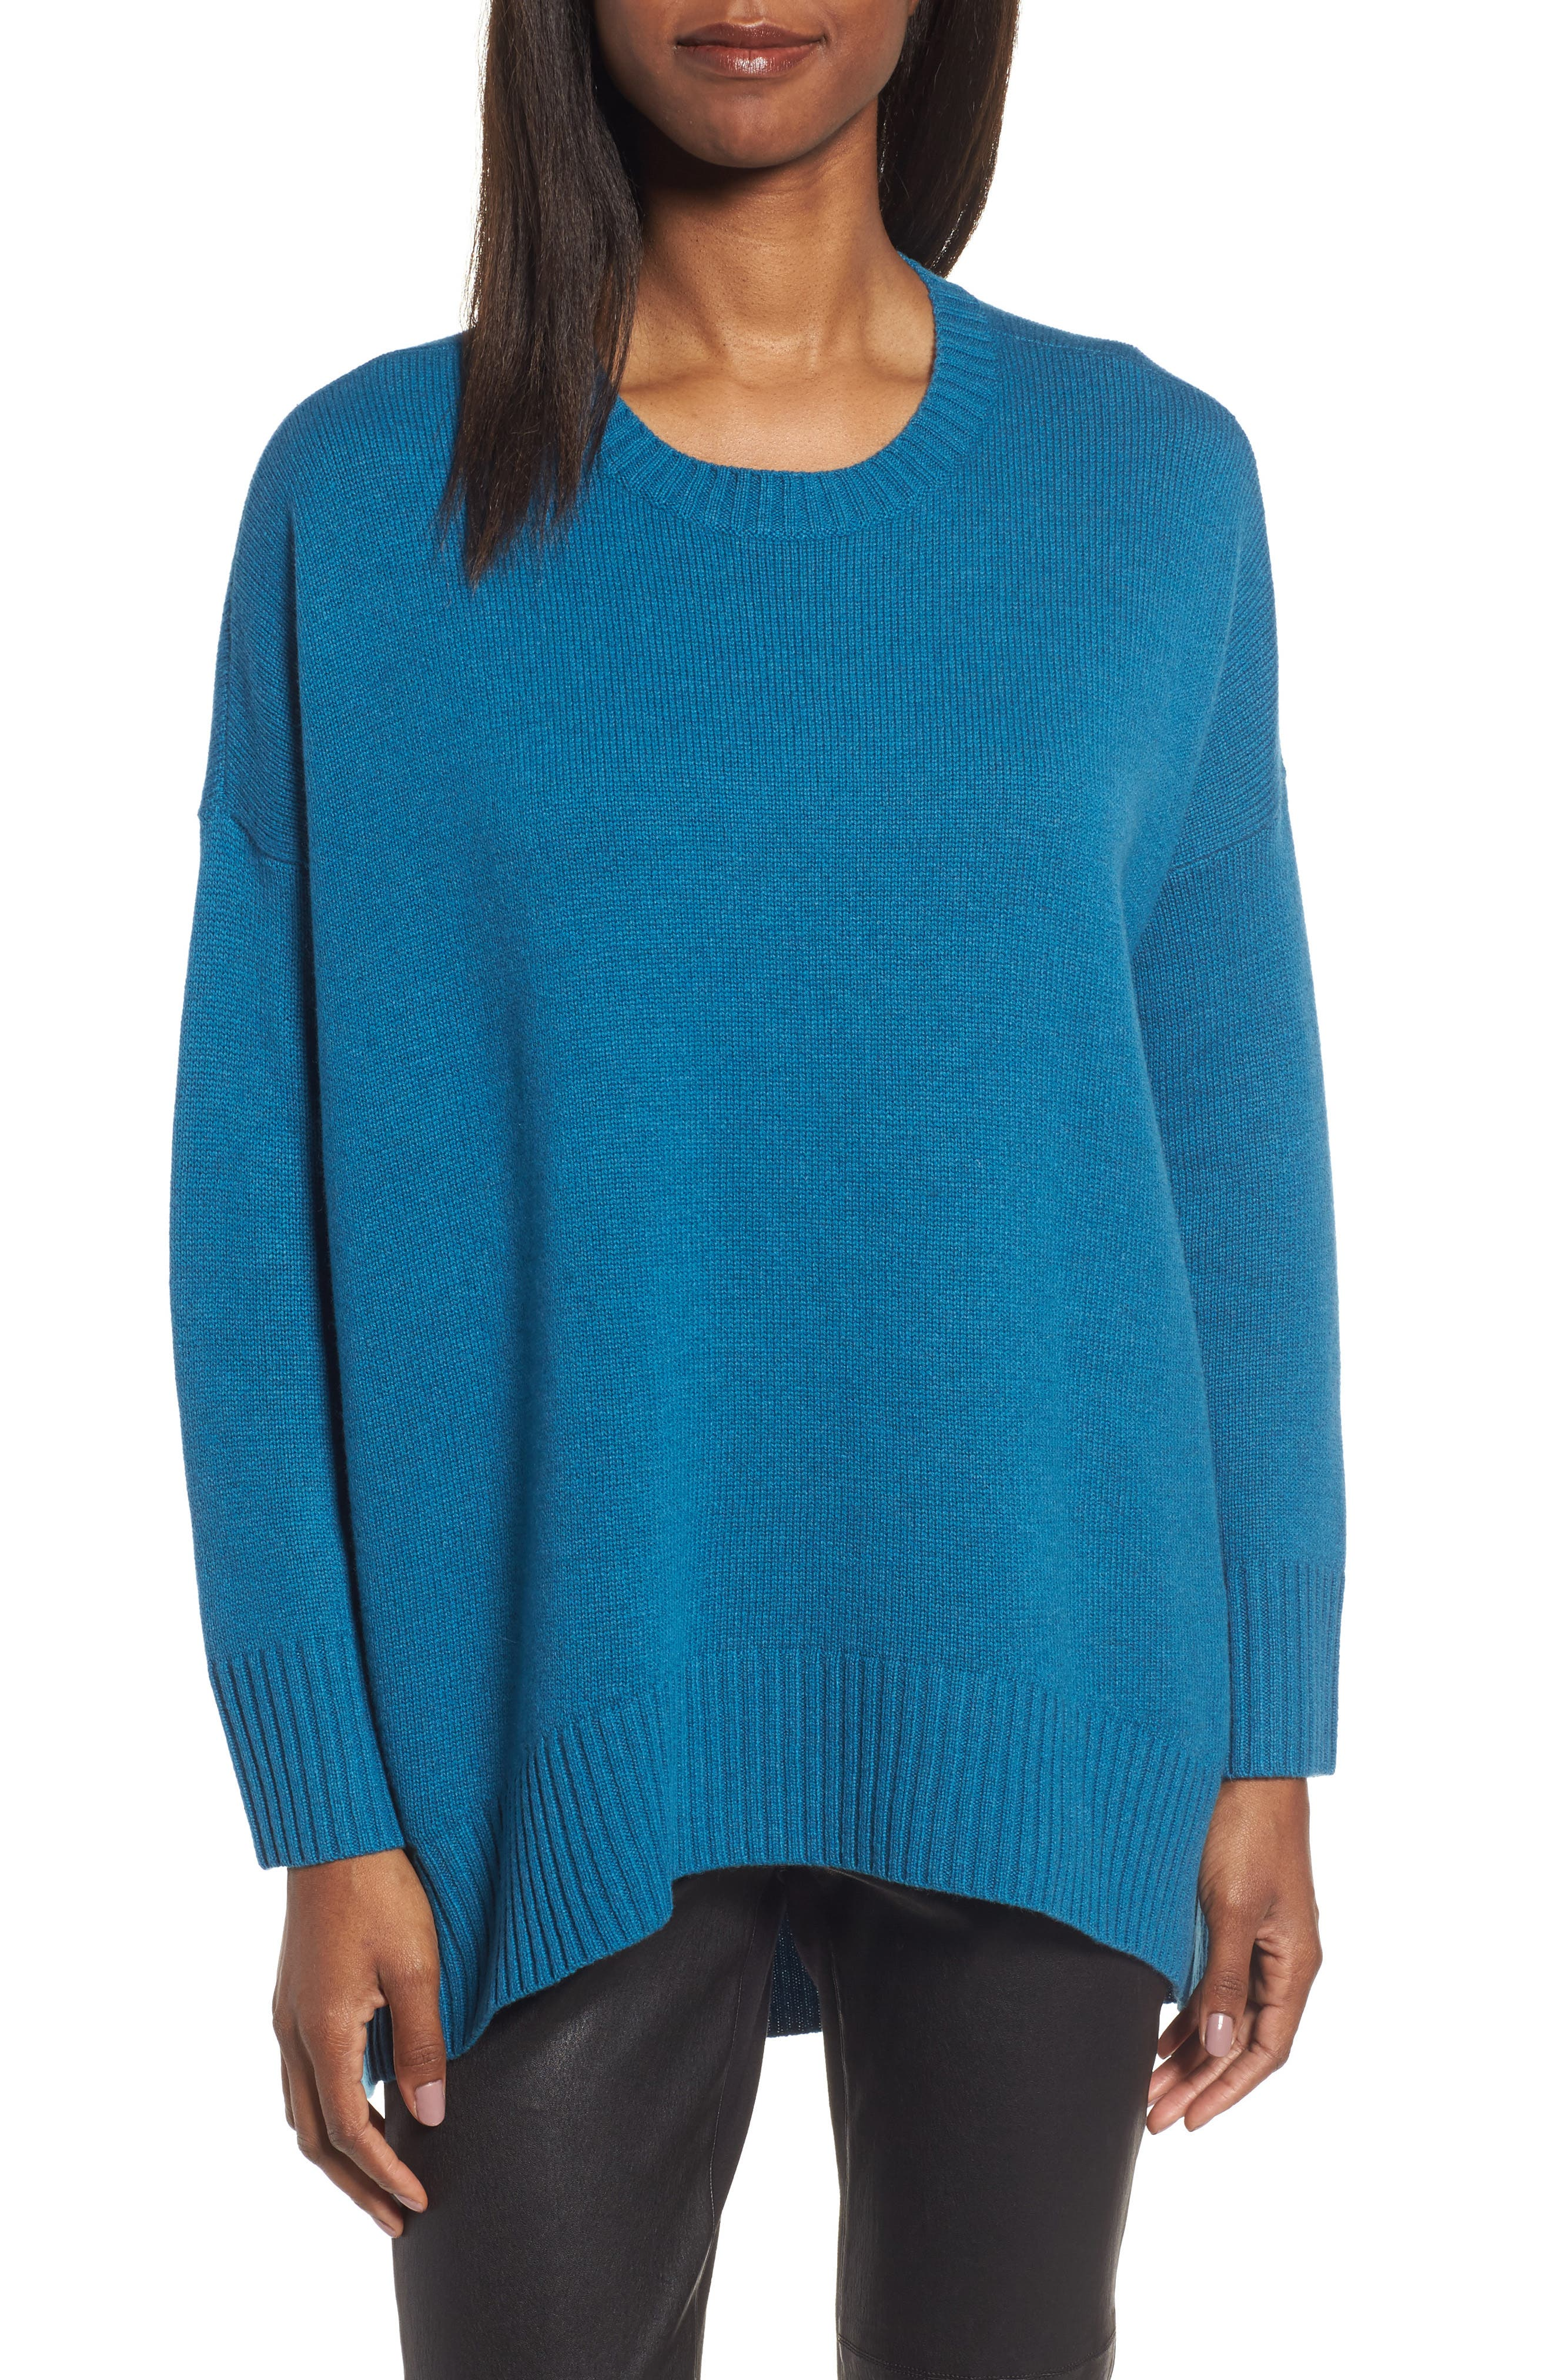 Cashmere & Wool Blend Oversize Sweater,                             Main thumbnail 1, color,                             Nile